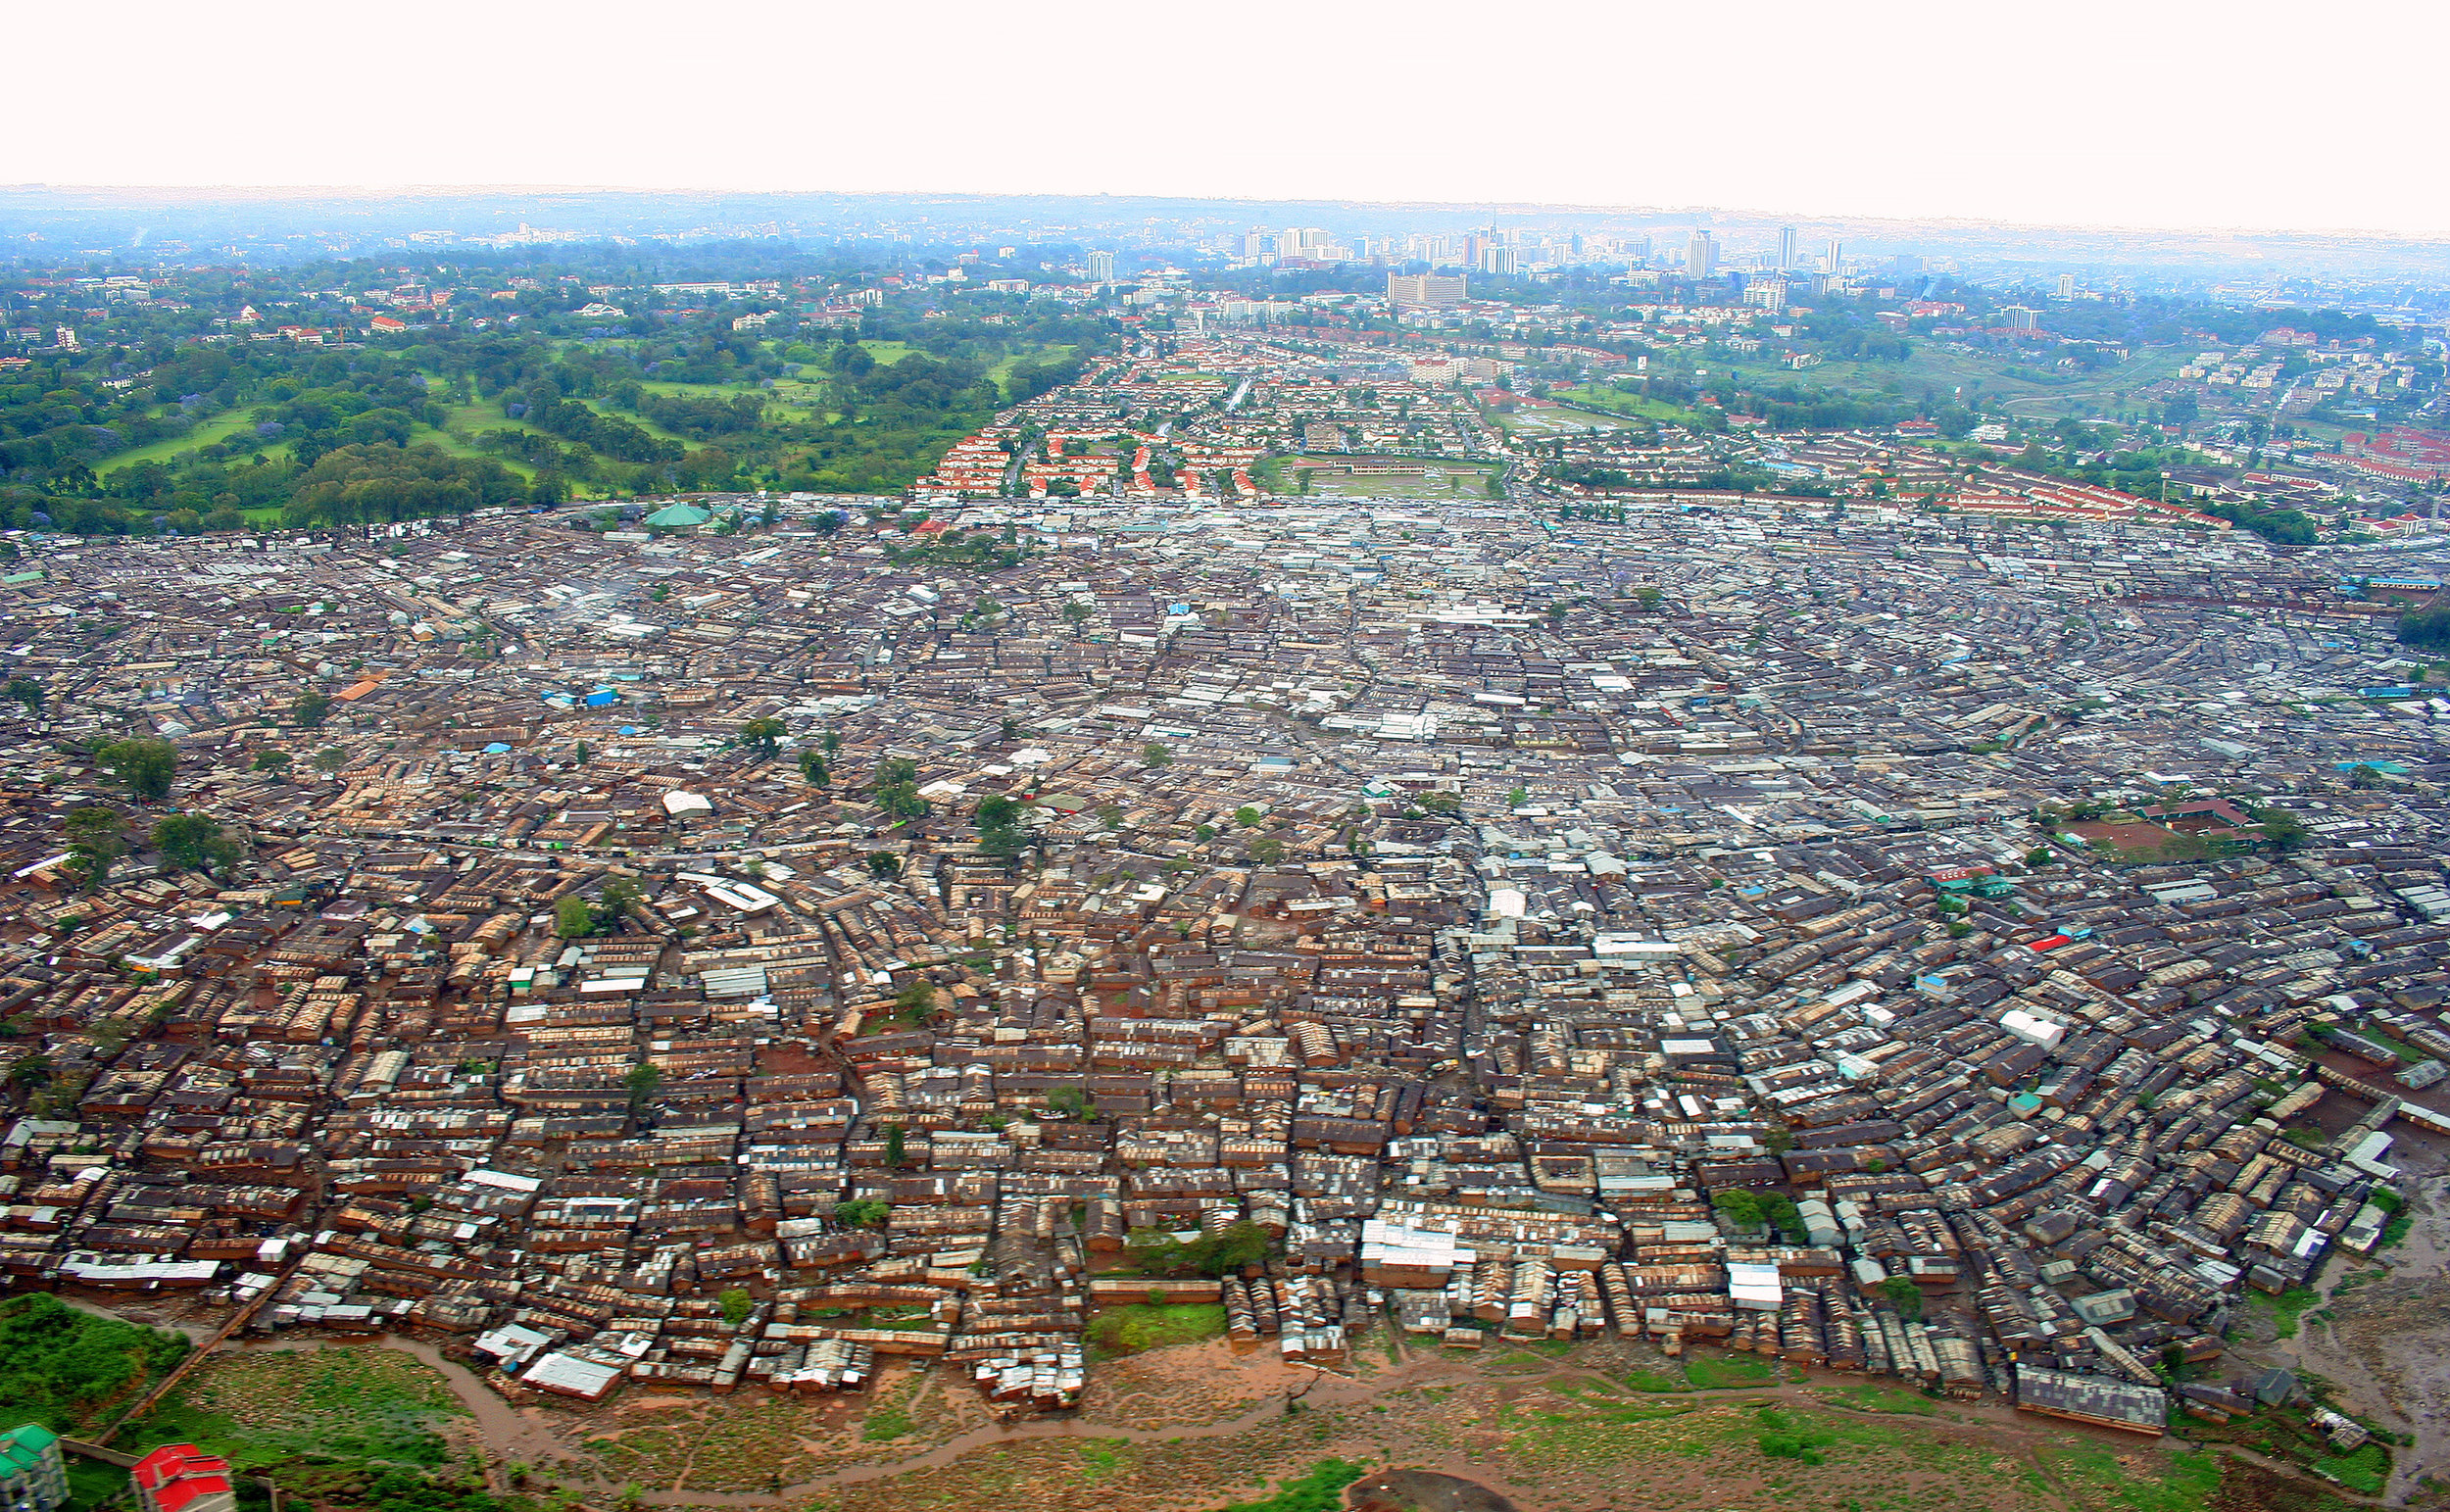 Kibera is the largest slum in Nairobi, and the largest urban slum in Africa